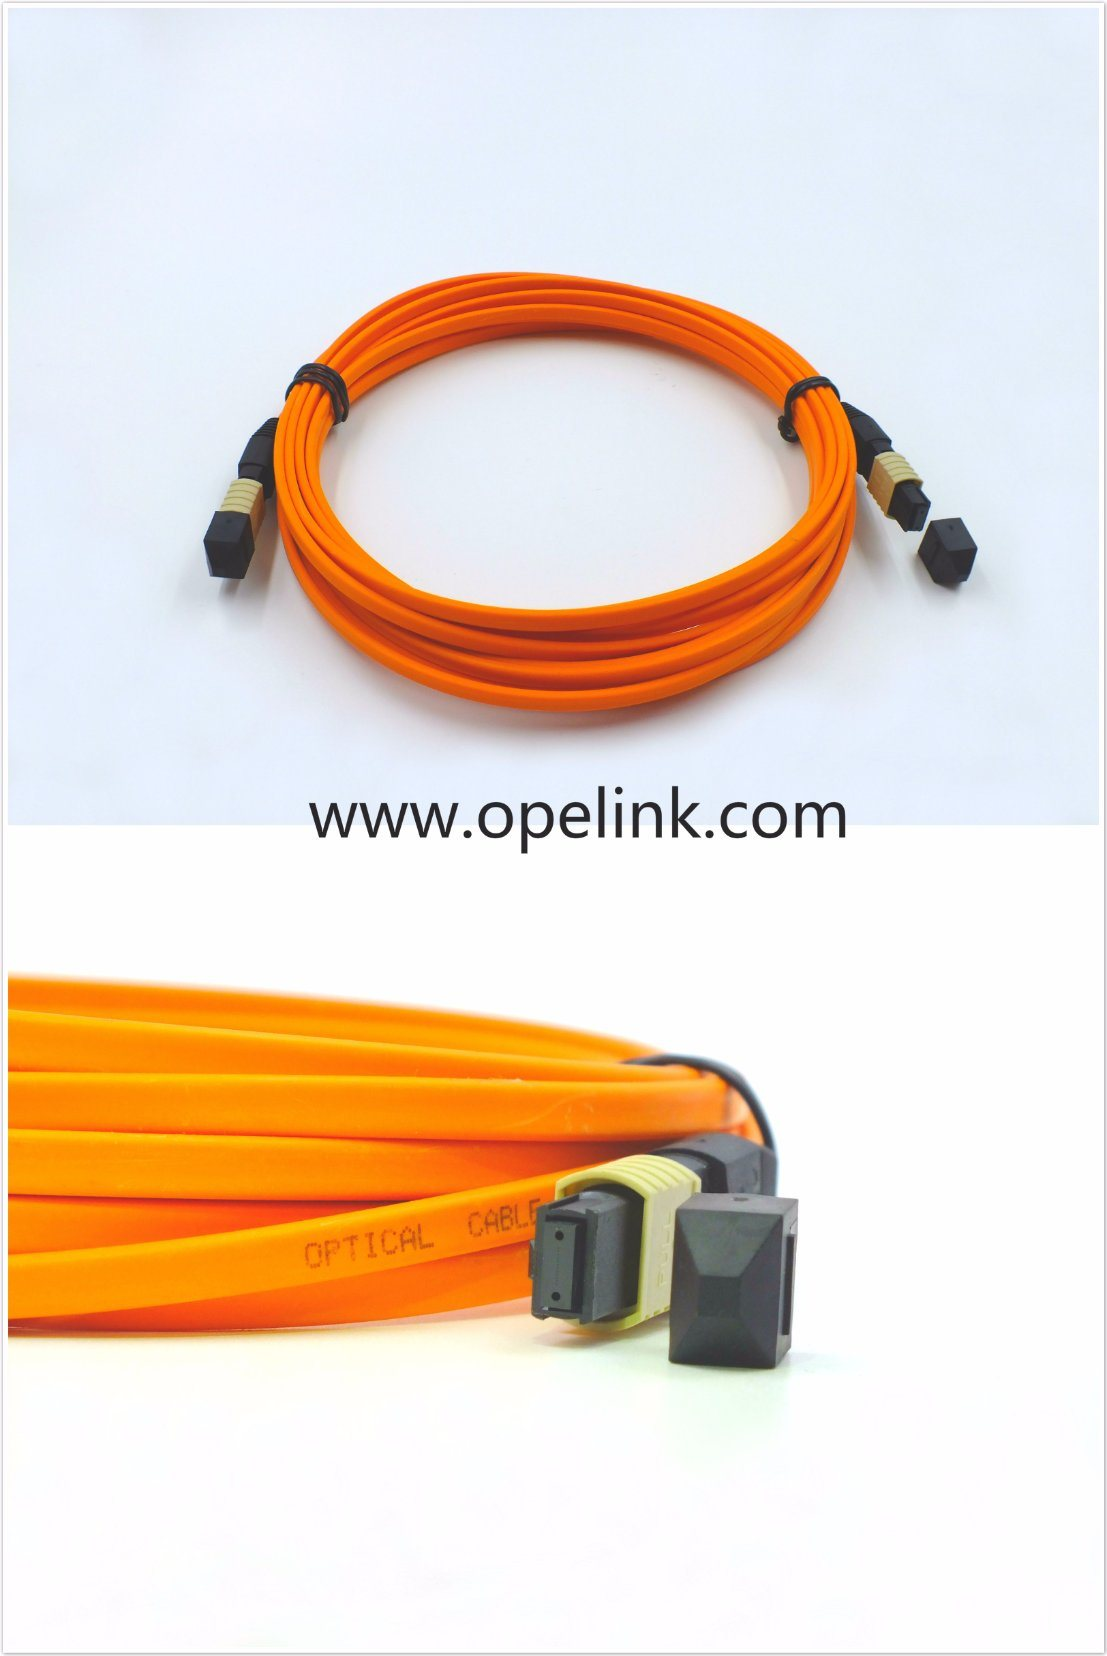 MPO/MTP Fiber Optic Patch Cord Optical LAN /Network Fiber Cable